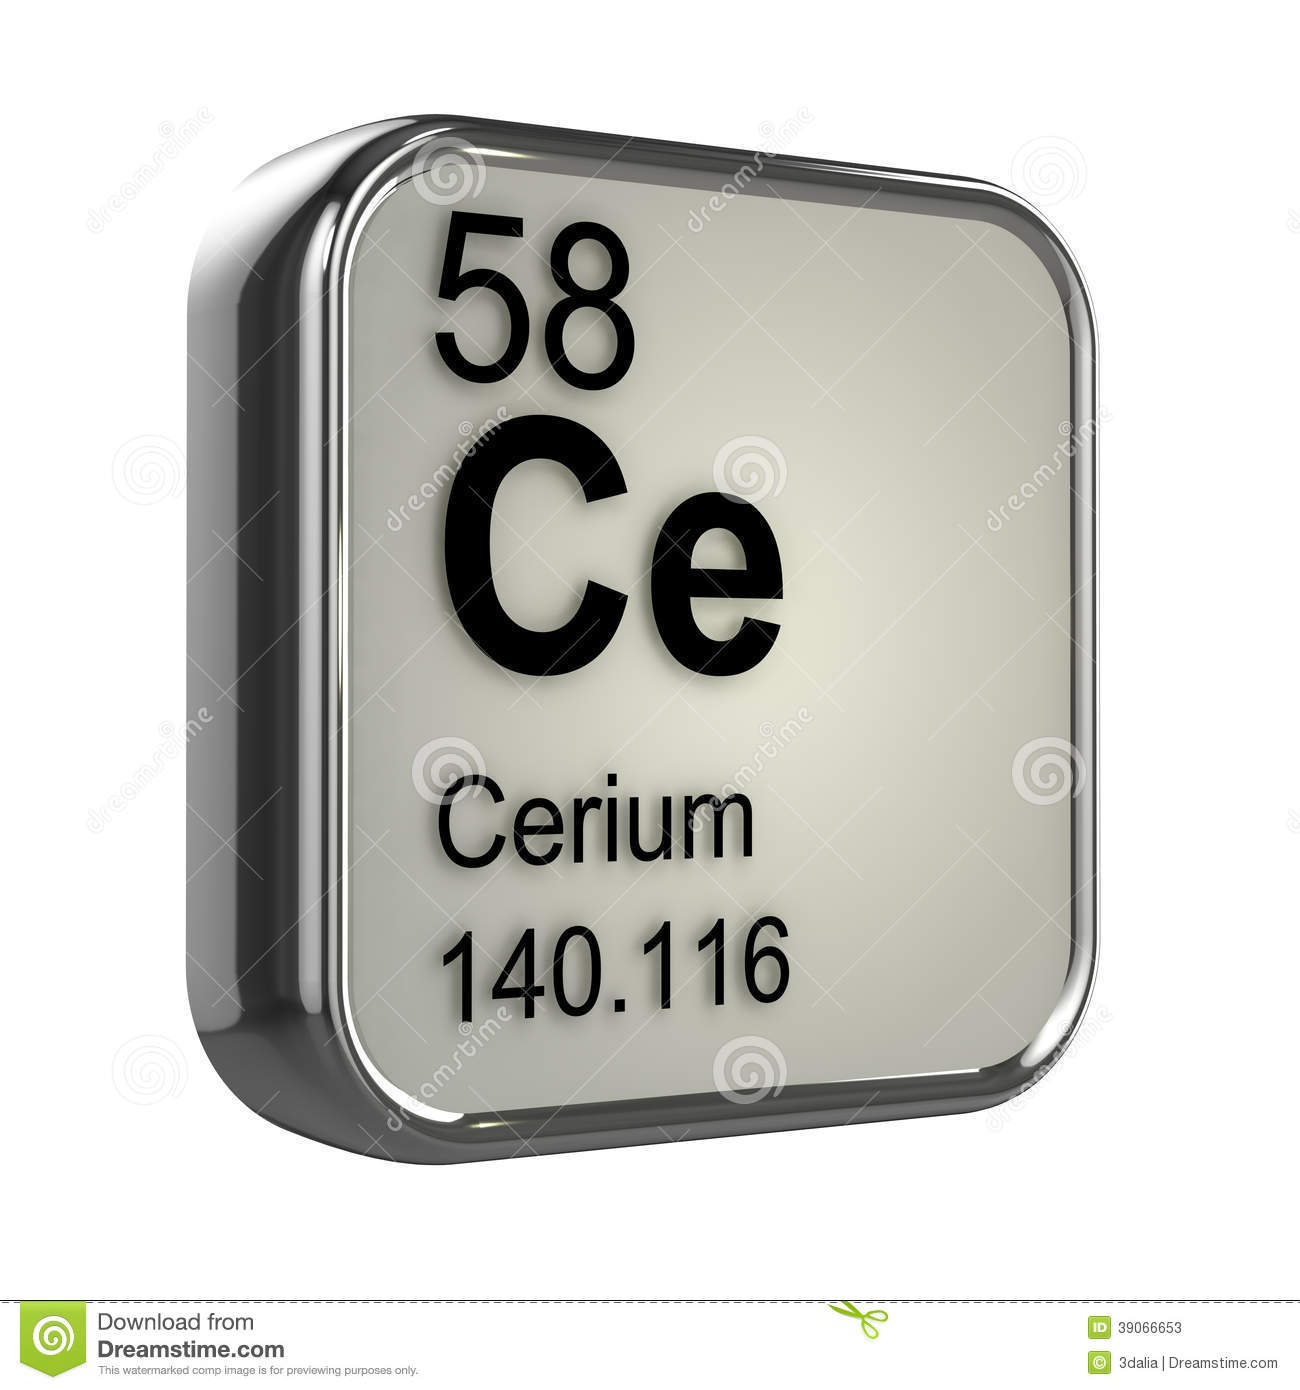 Eudyalite, a sample of the element Cerium in the Periodic Table